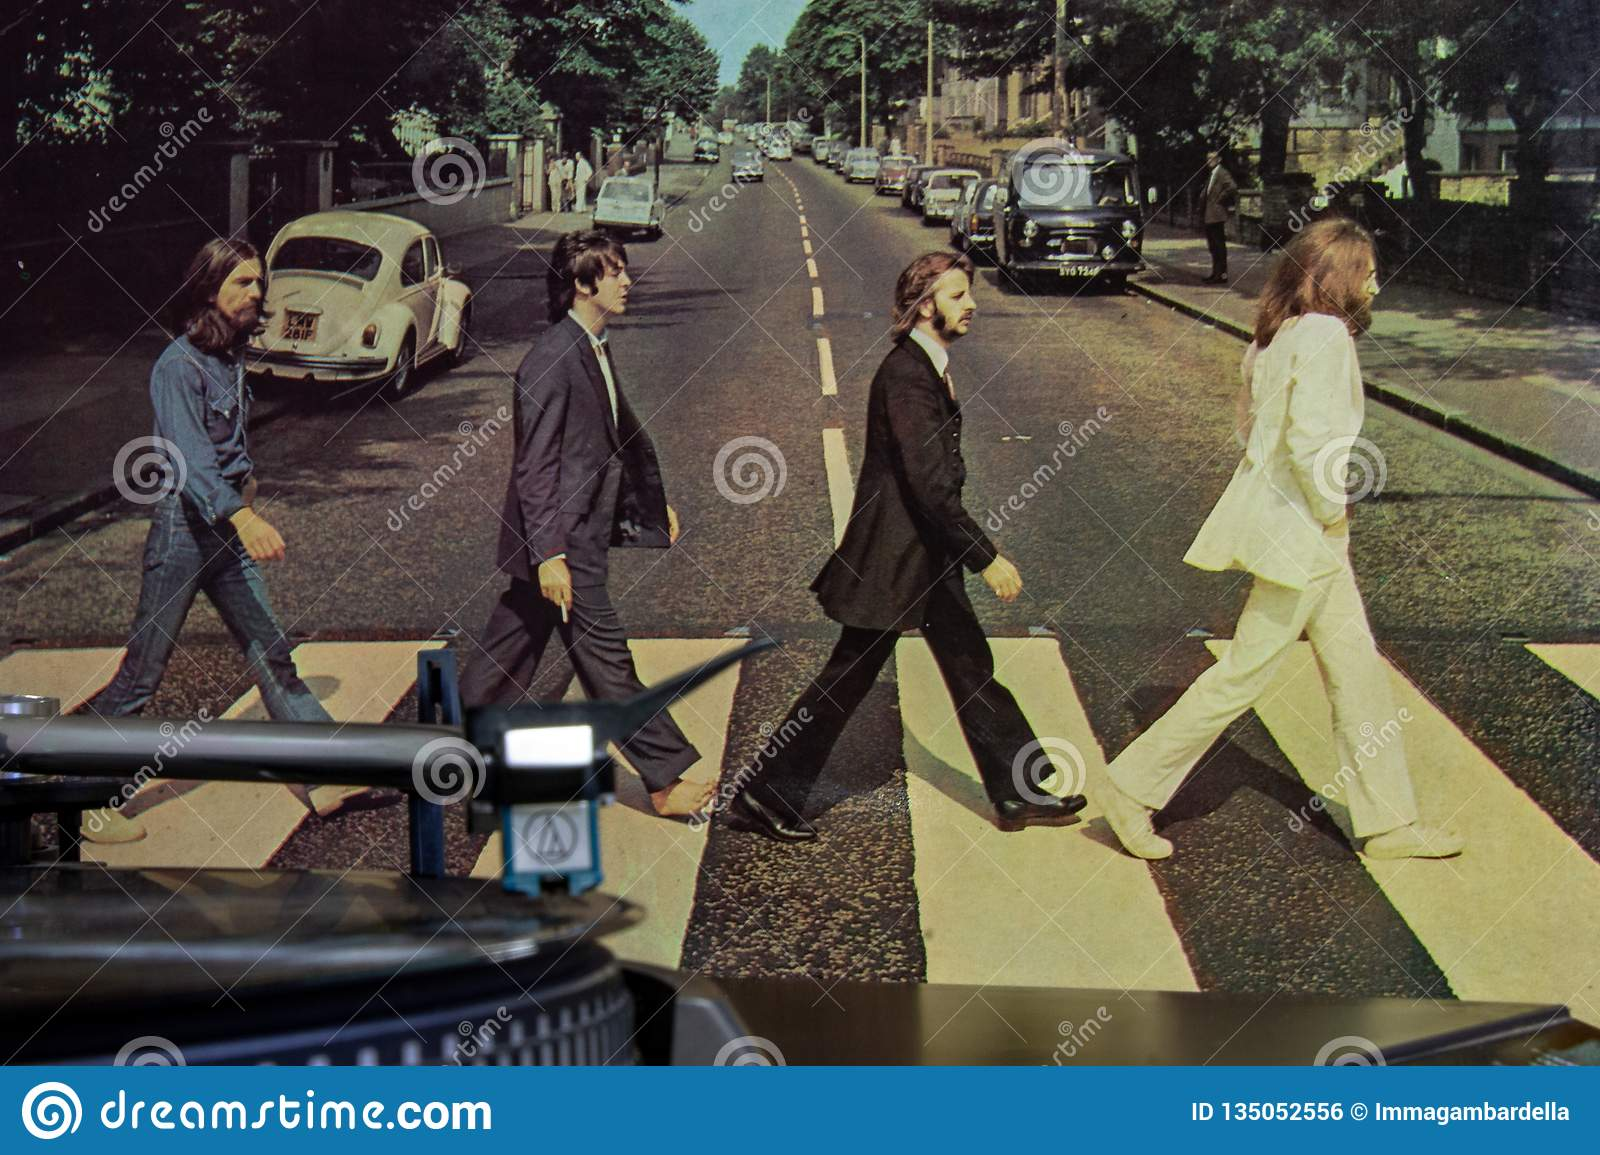 Cover of the famous Beatles Abbey Road album with a turntable in the foreground.